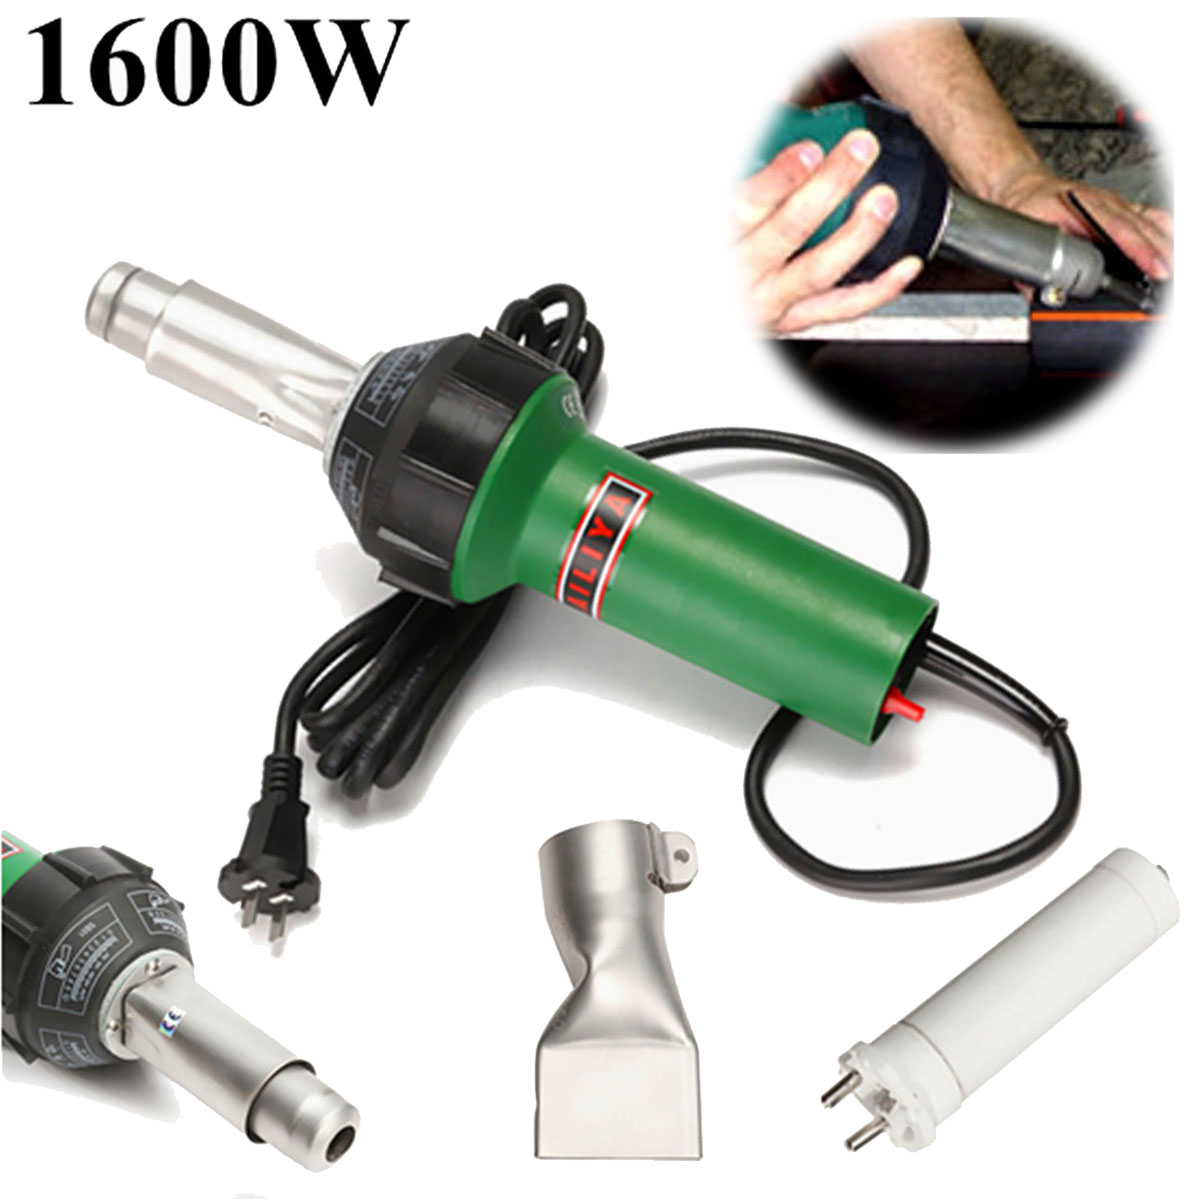 New AC 220V 1600W 50/60Hz Hot Air Torch Plastic Welding-Gun For Welder + Flat Nose Wholesale Price